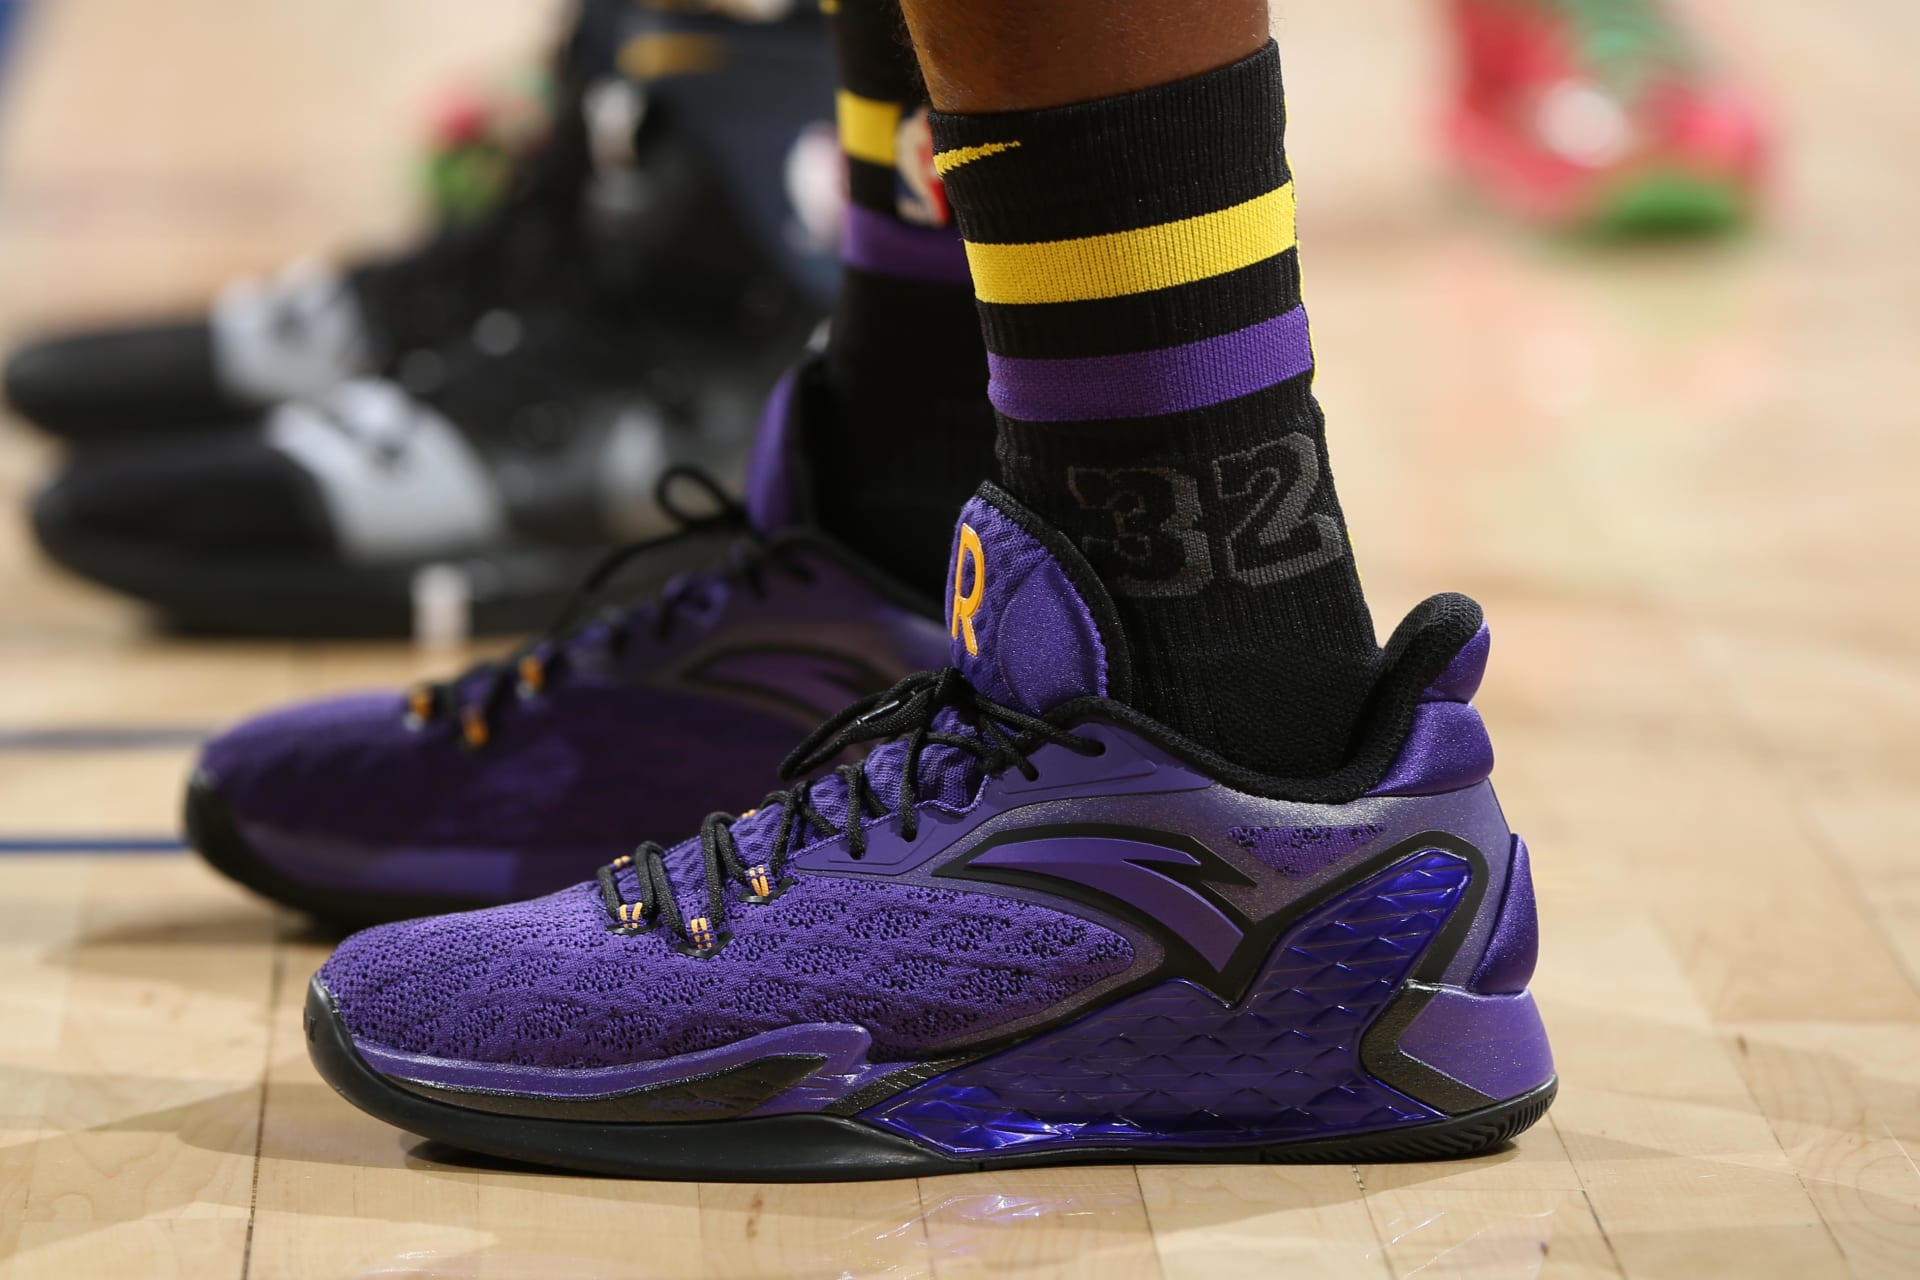 80ff25393ea7f NBA Christmas Shoes  Best Sneakers Worn on Christmas Day 2018